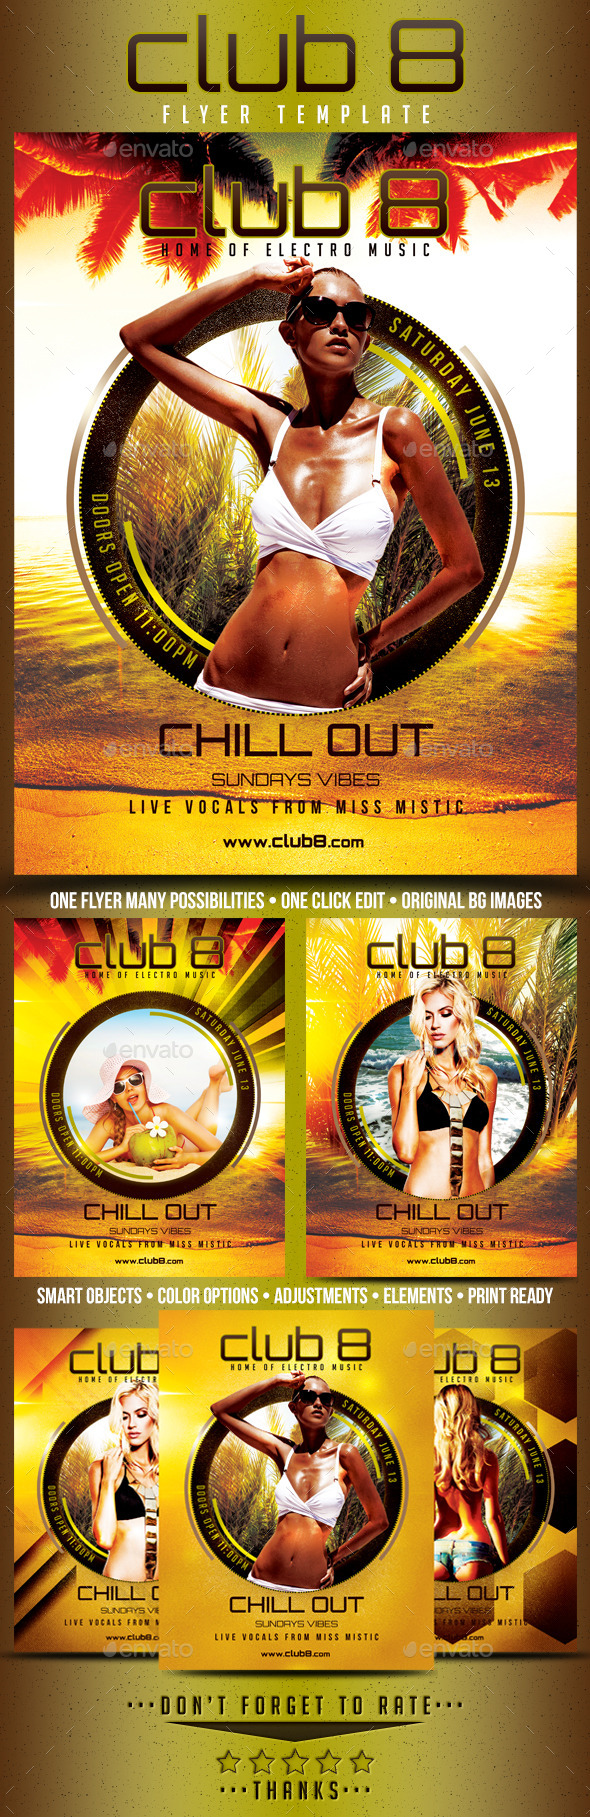 Club 8 Chill Out Flyer Template - Clubs & Parties Events